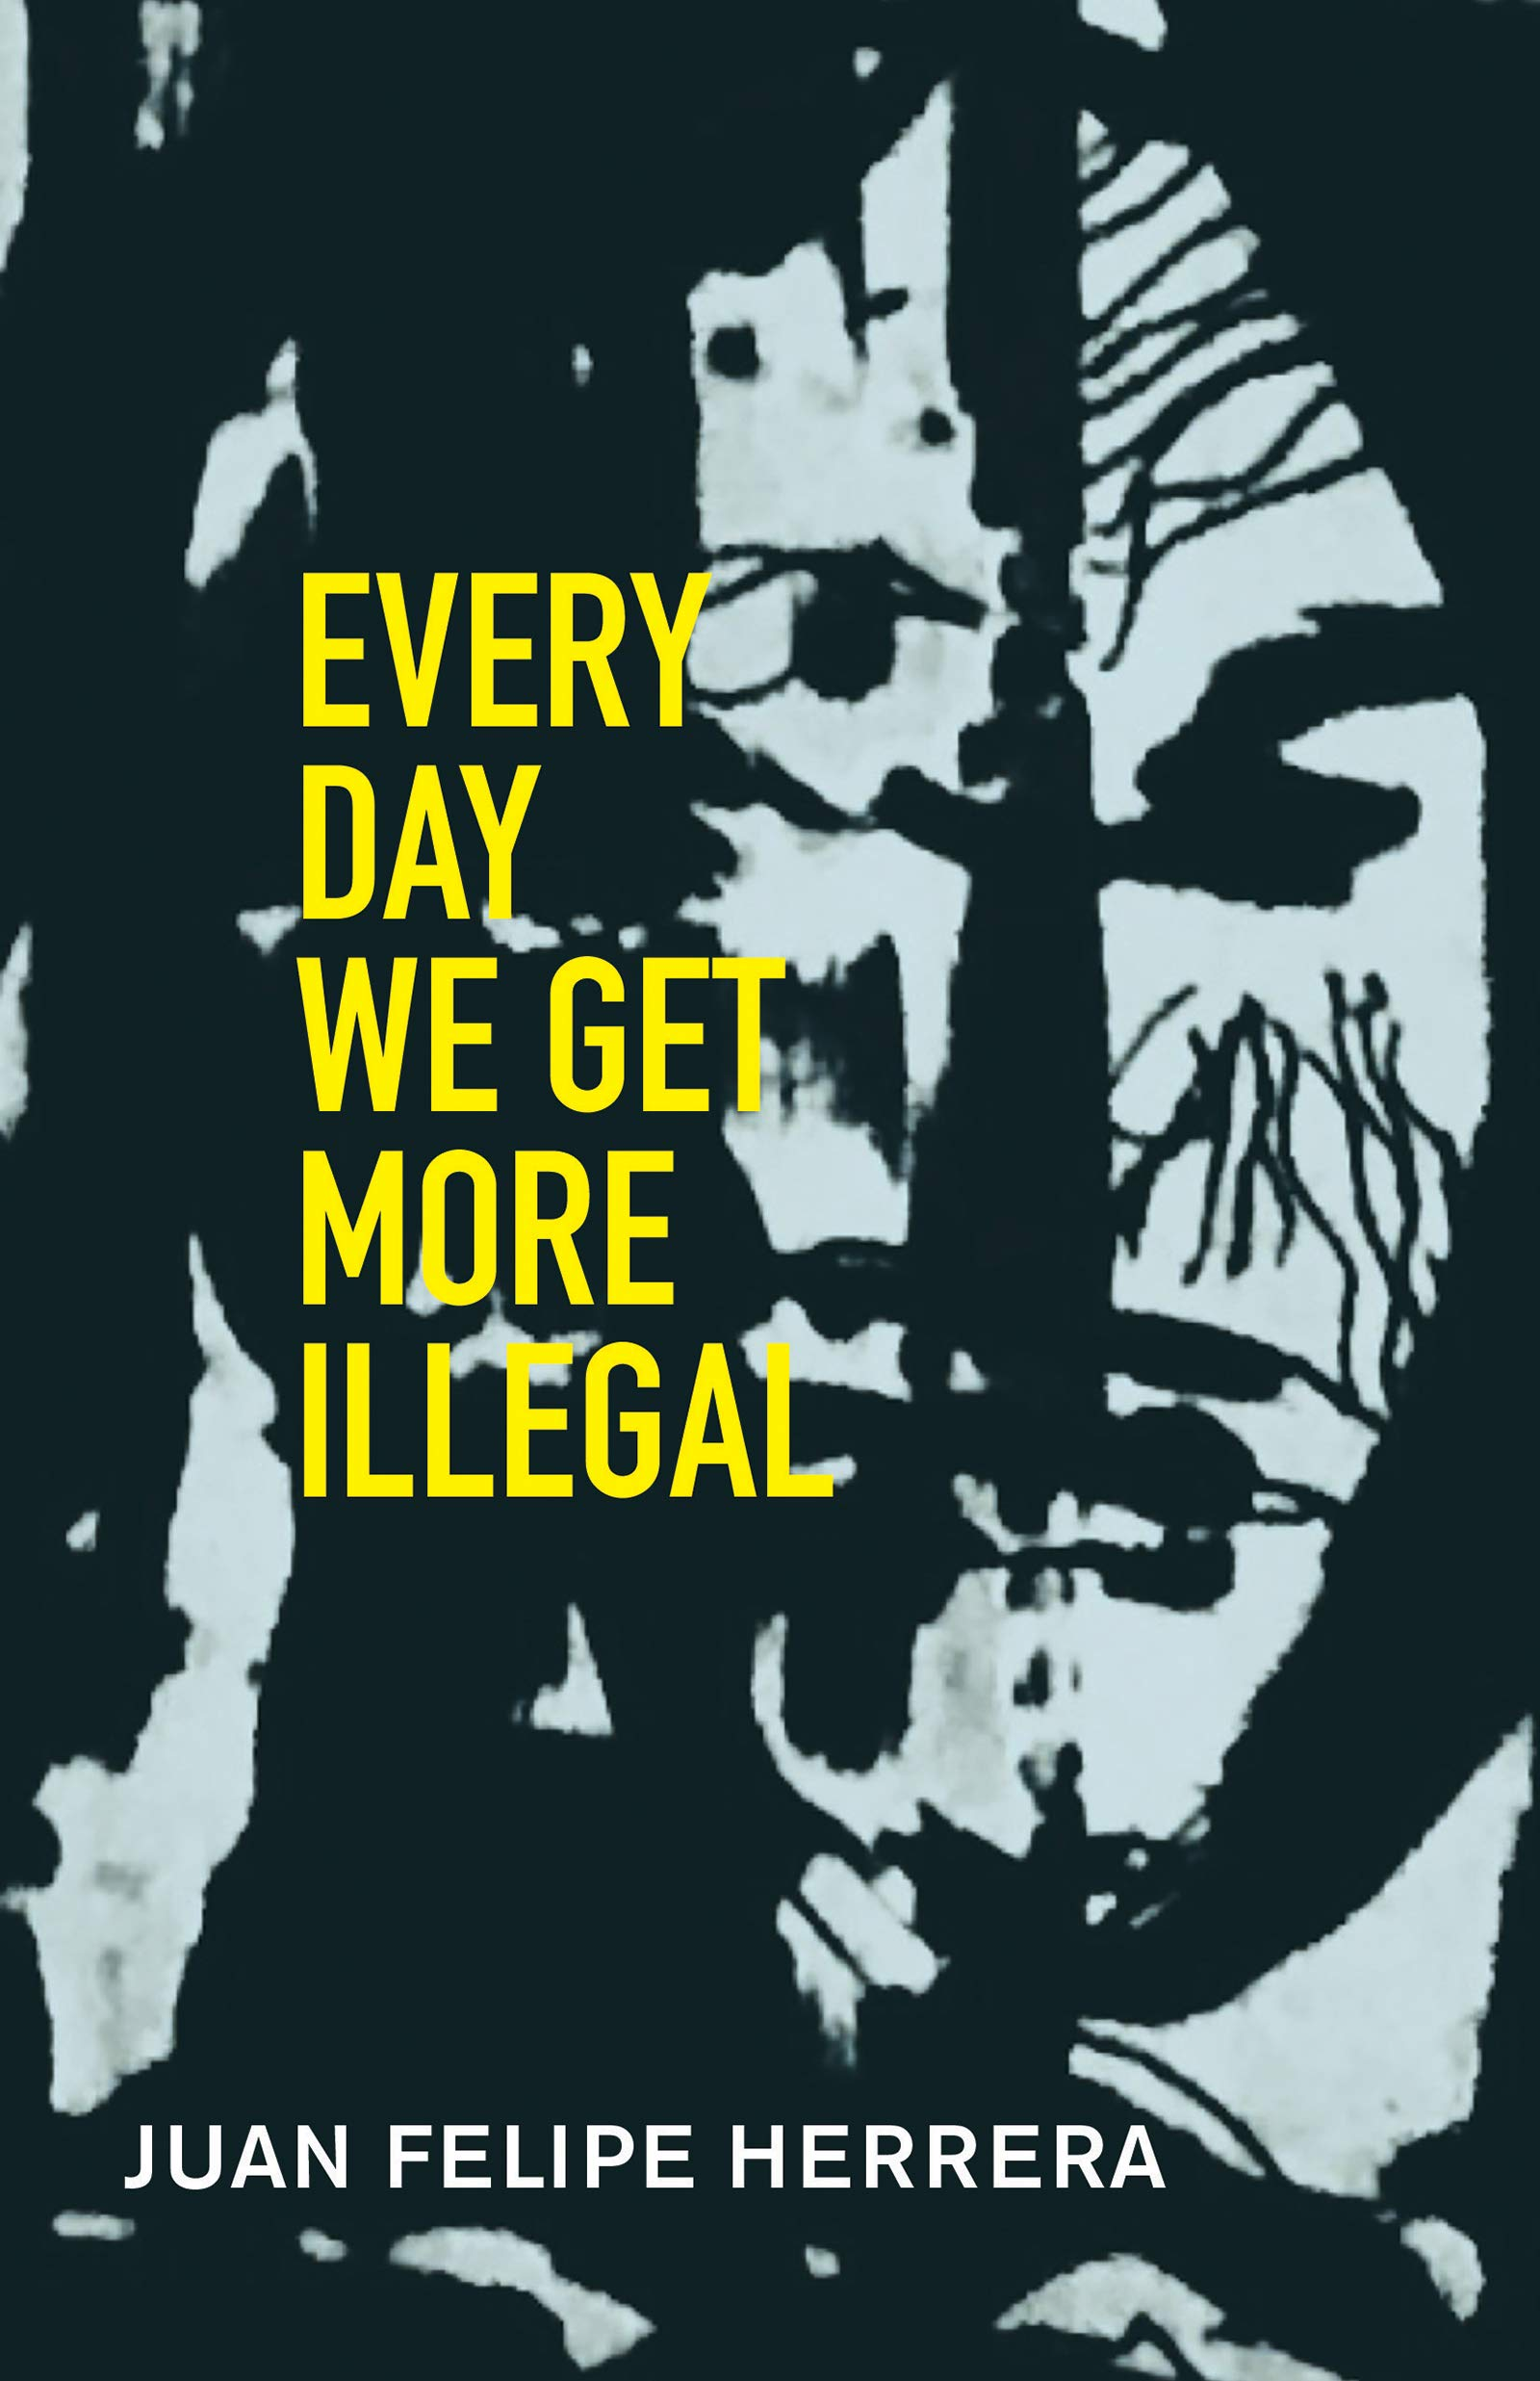 Every Day We Get More Illegal